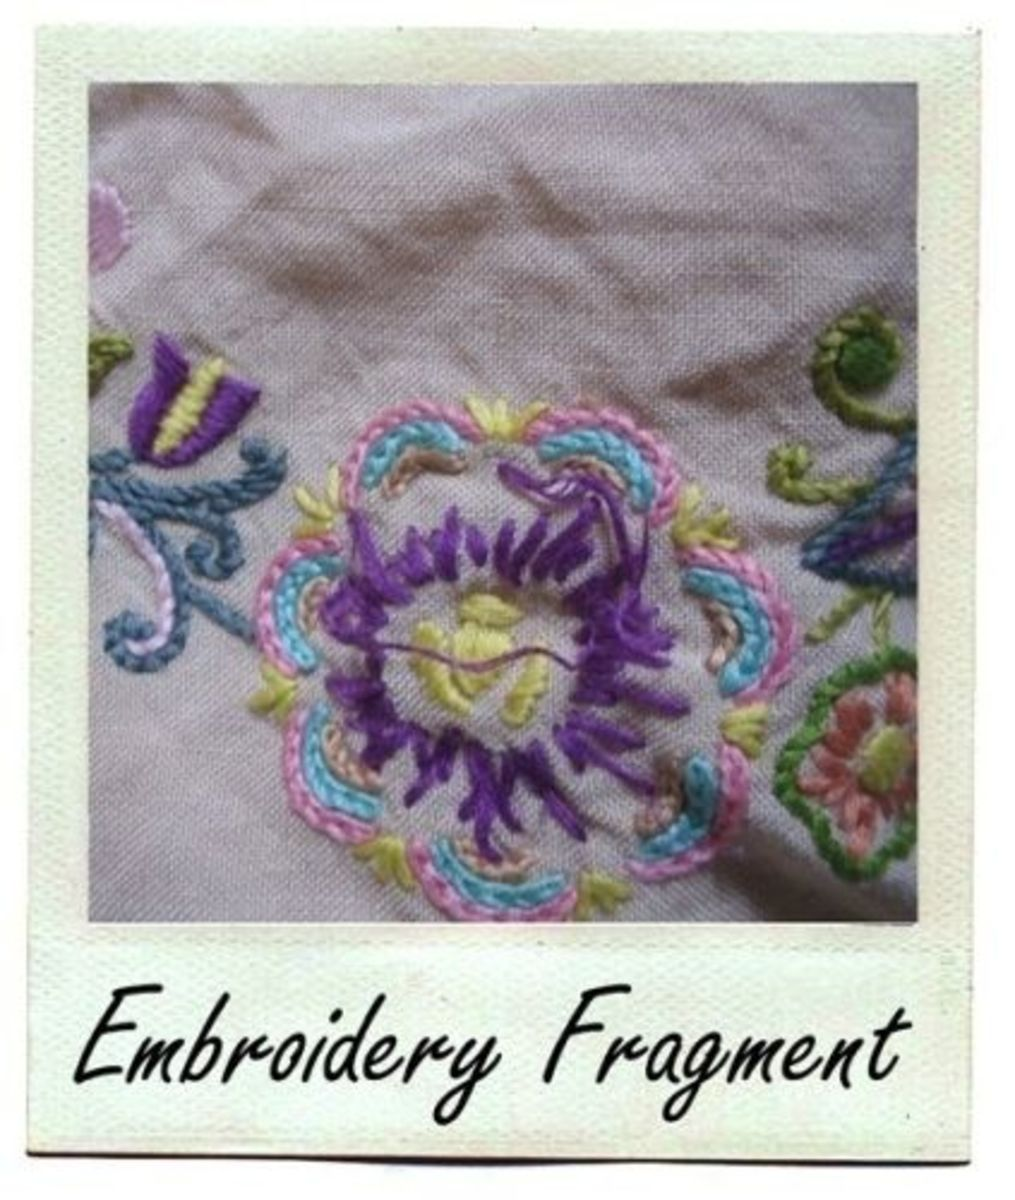 Embroidery Fragment by MeltedRachel